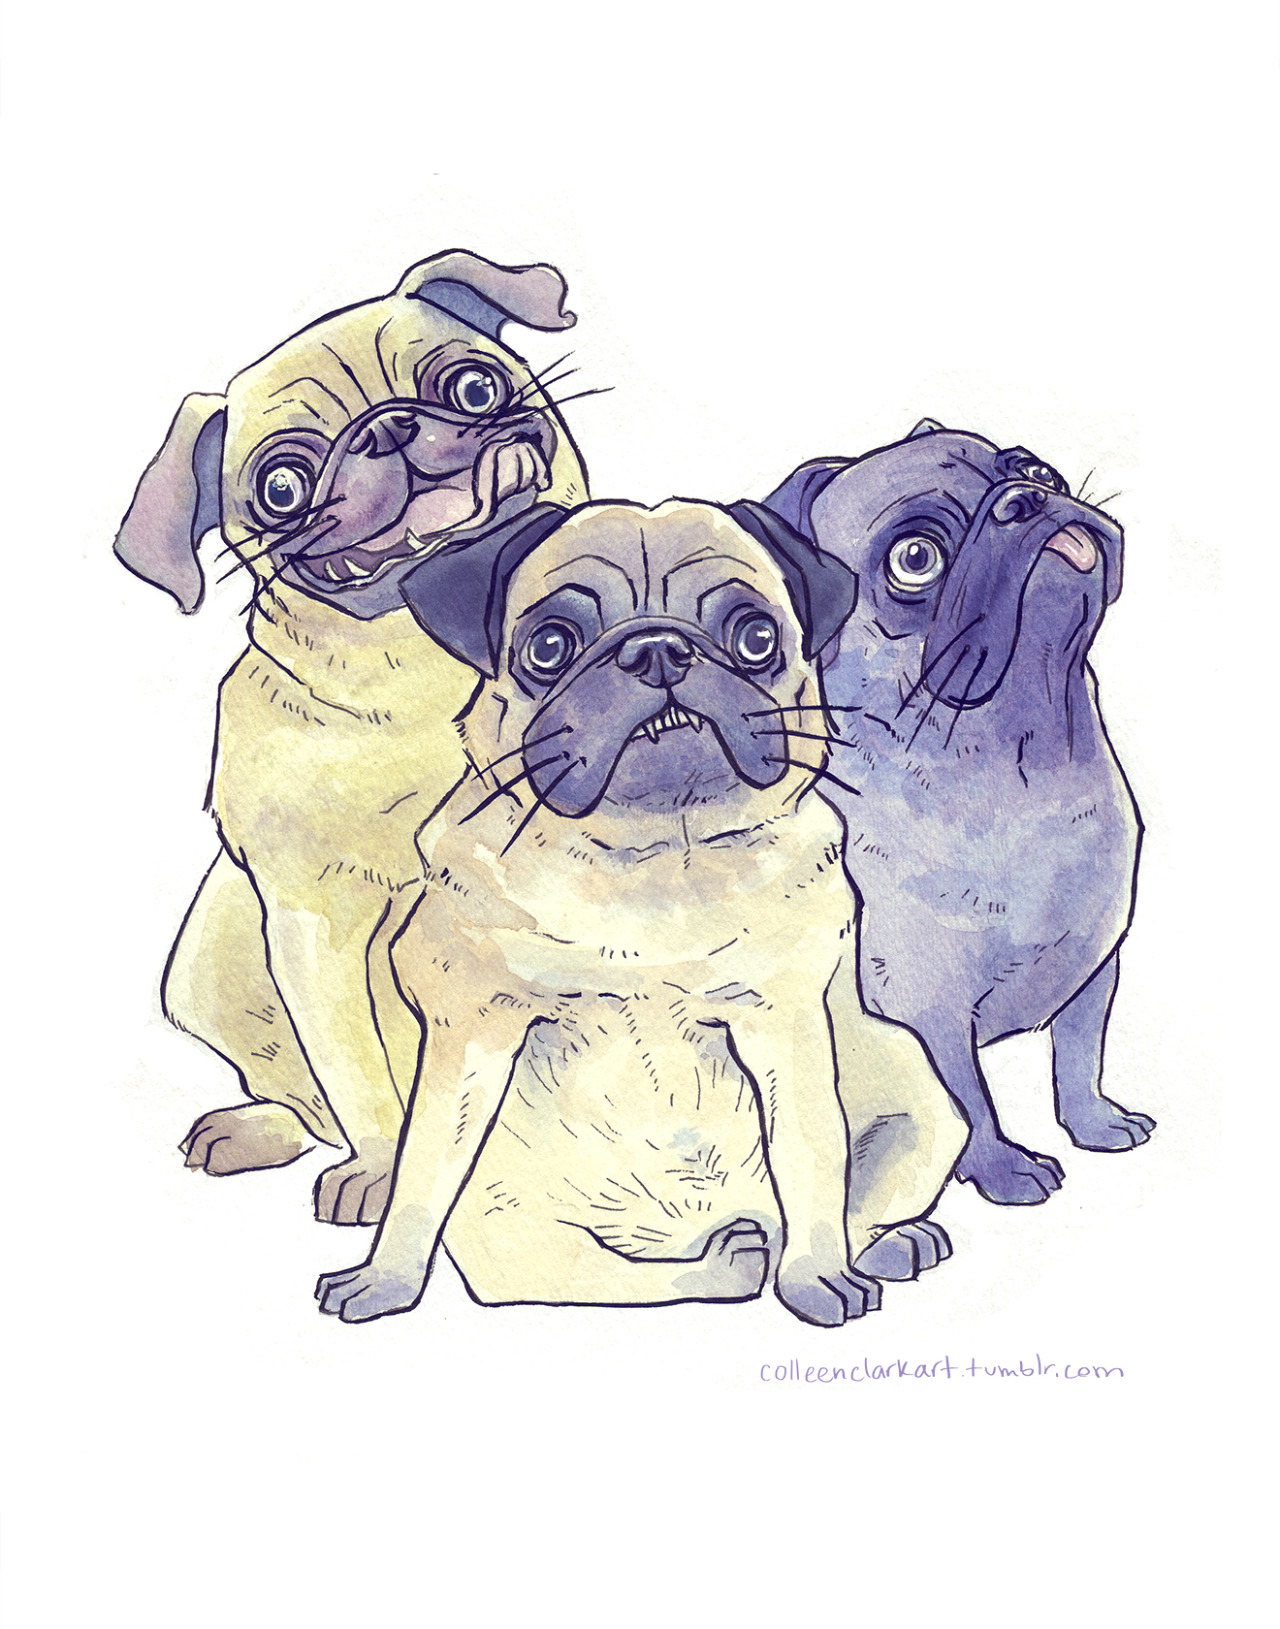 Pug Thuggin'. Started this last semester in watercolor class and finally finished it up today!